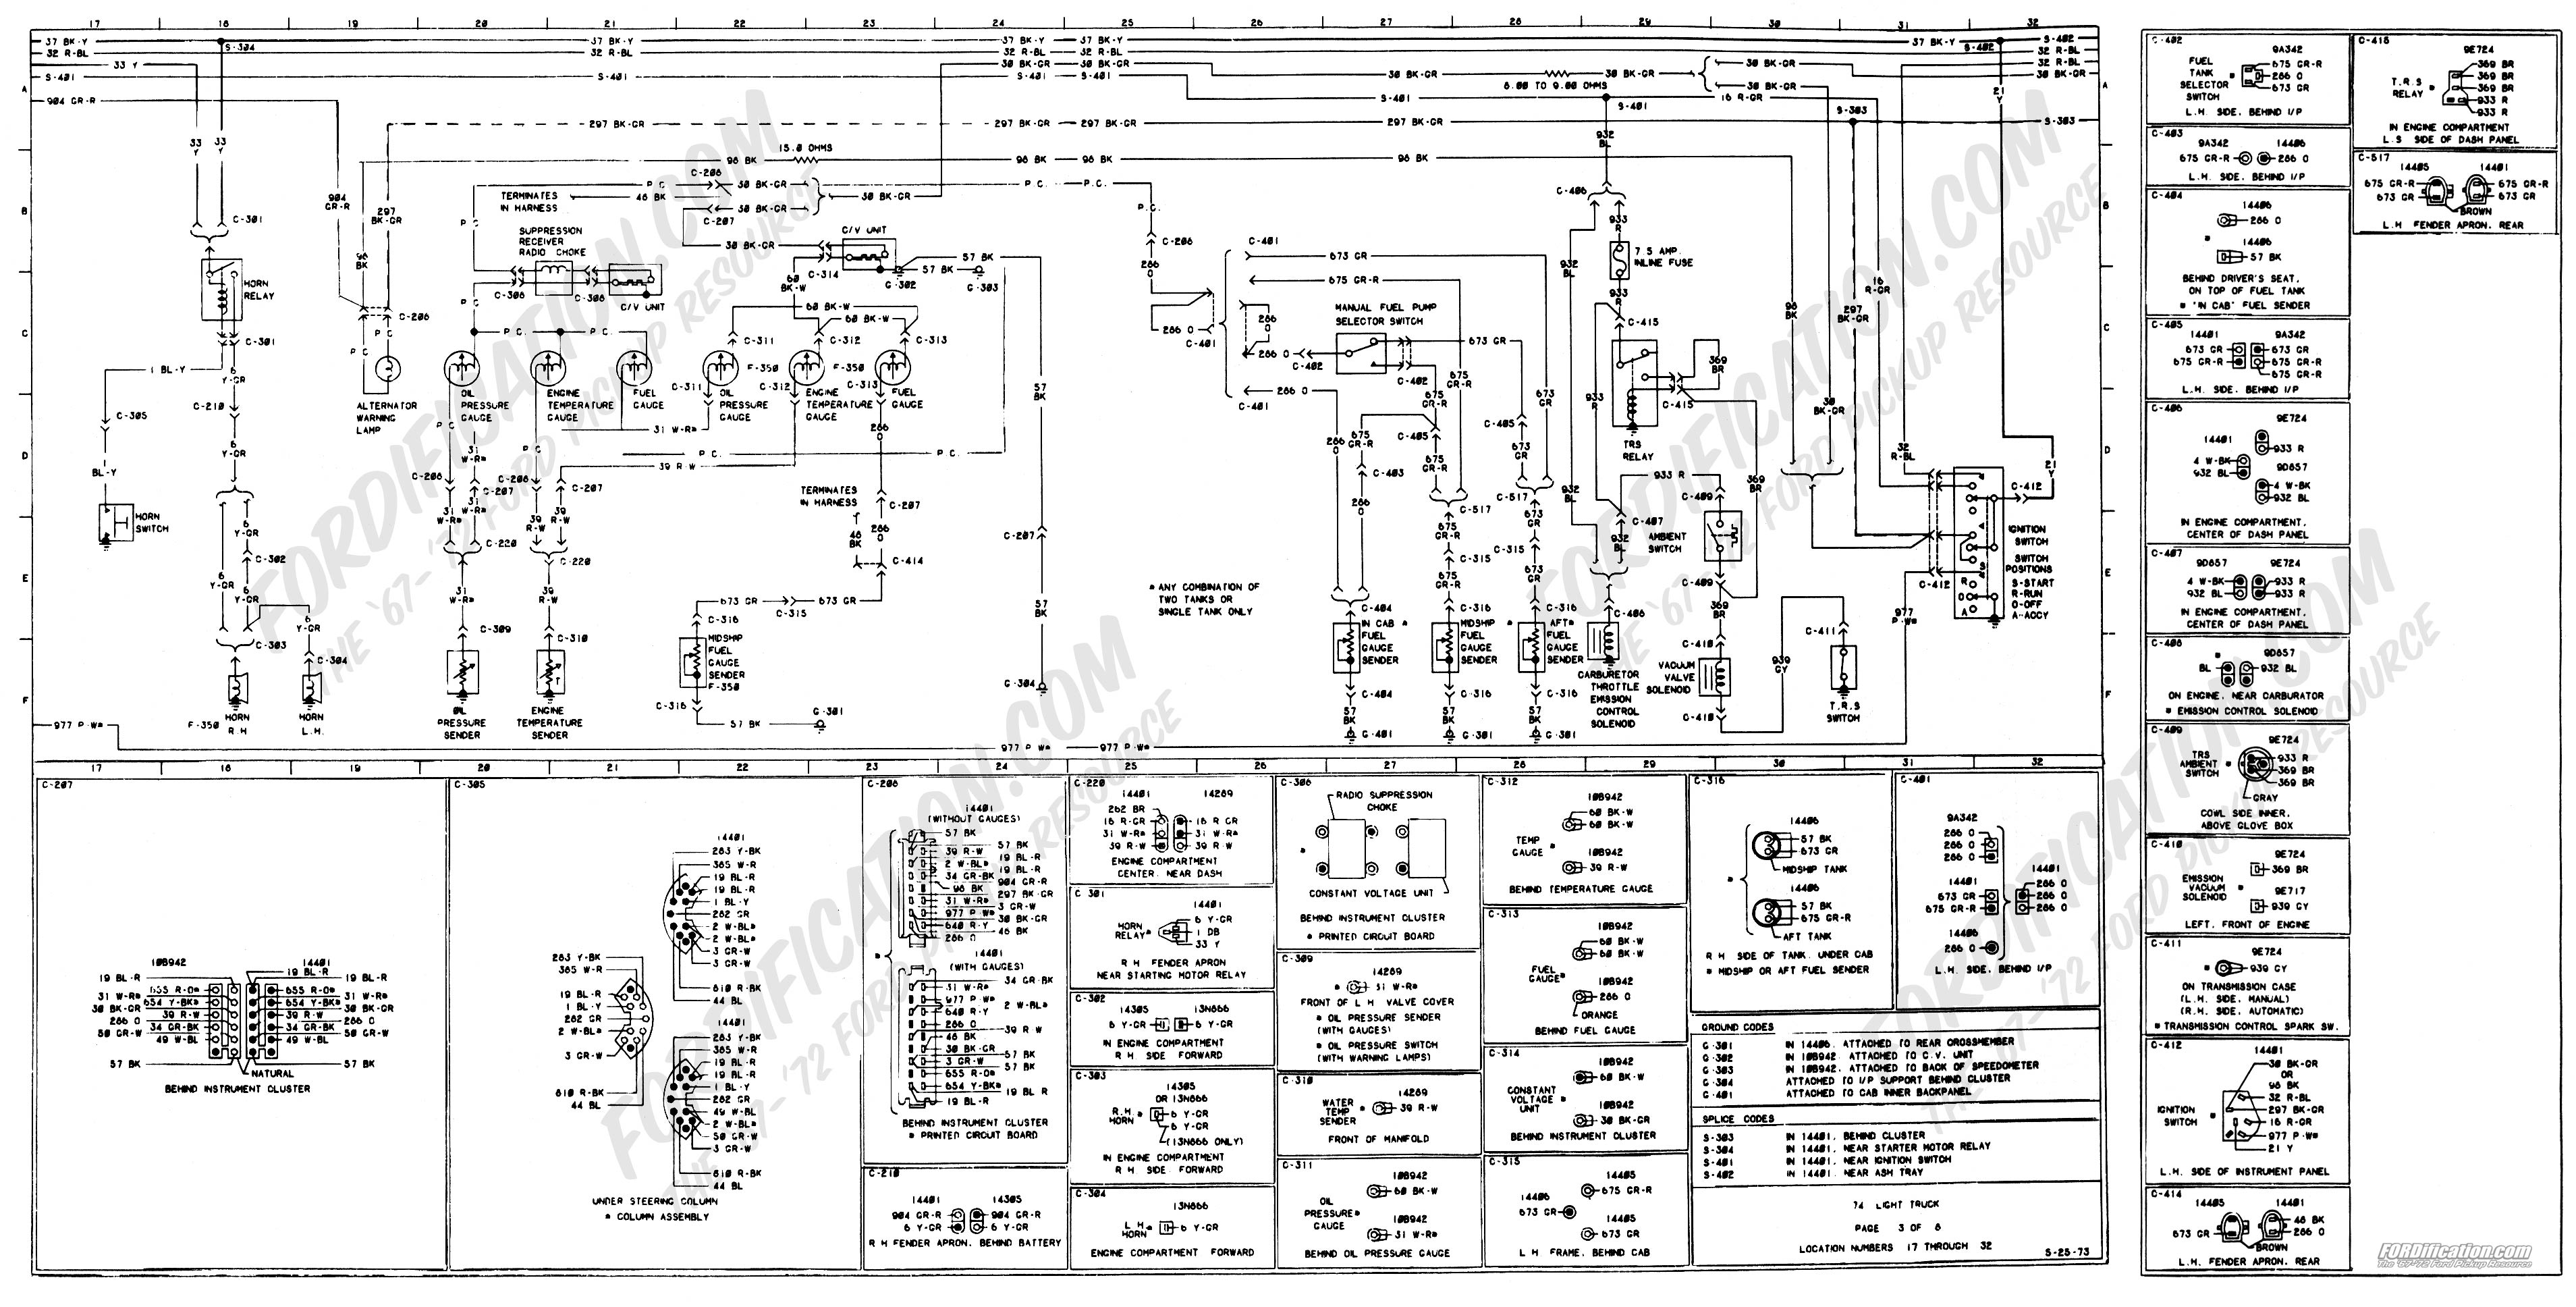 wiring_74master_3of8 1973 1979 ford truck wiring diagrams & schematics fordification net 2017 ford f550 wiring diagram at crackthecode.co